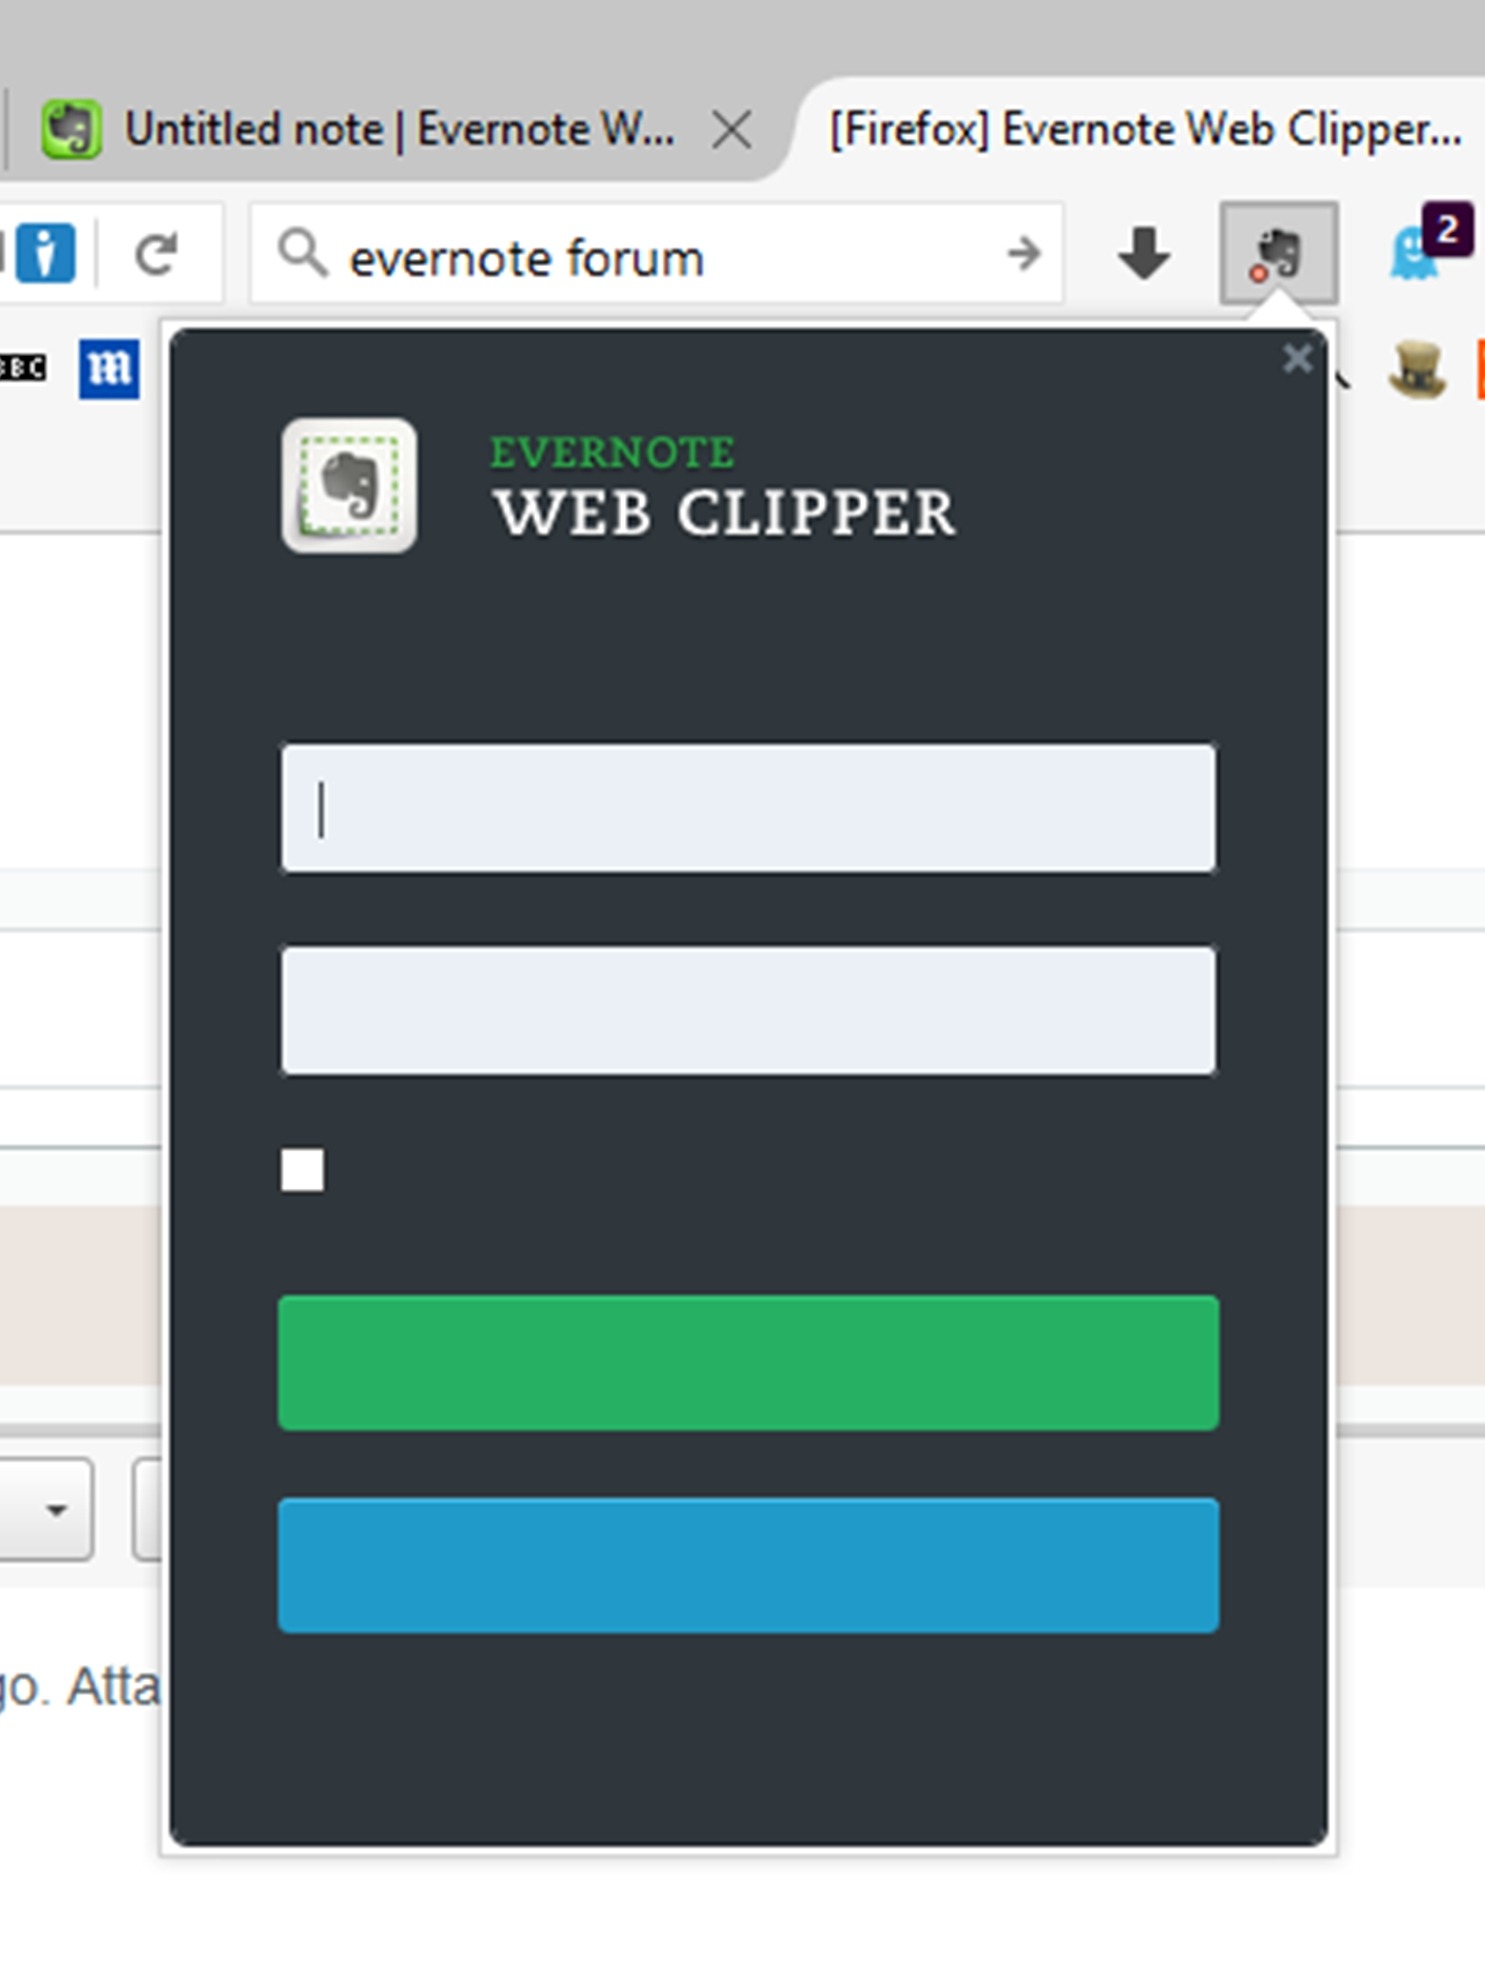 Firefox] Evernote Web Clipper 6 9 3 for Firefox released